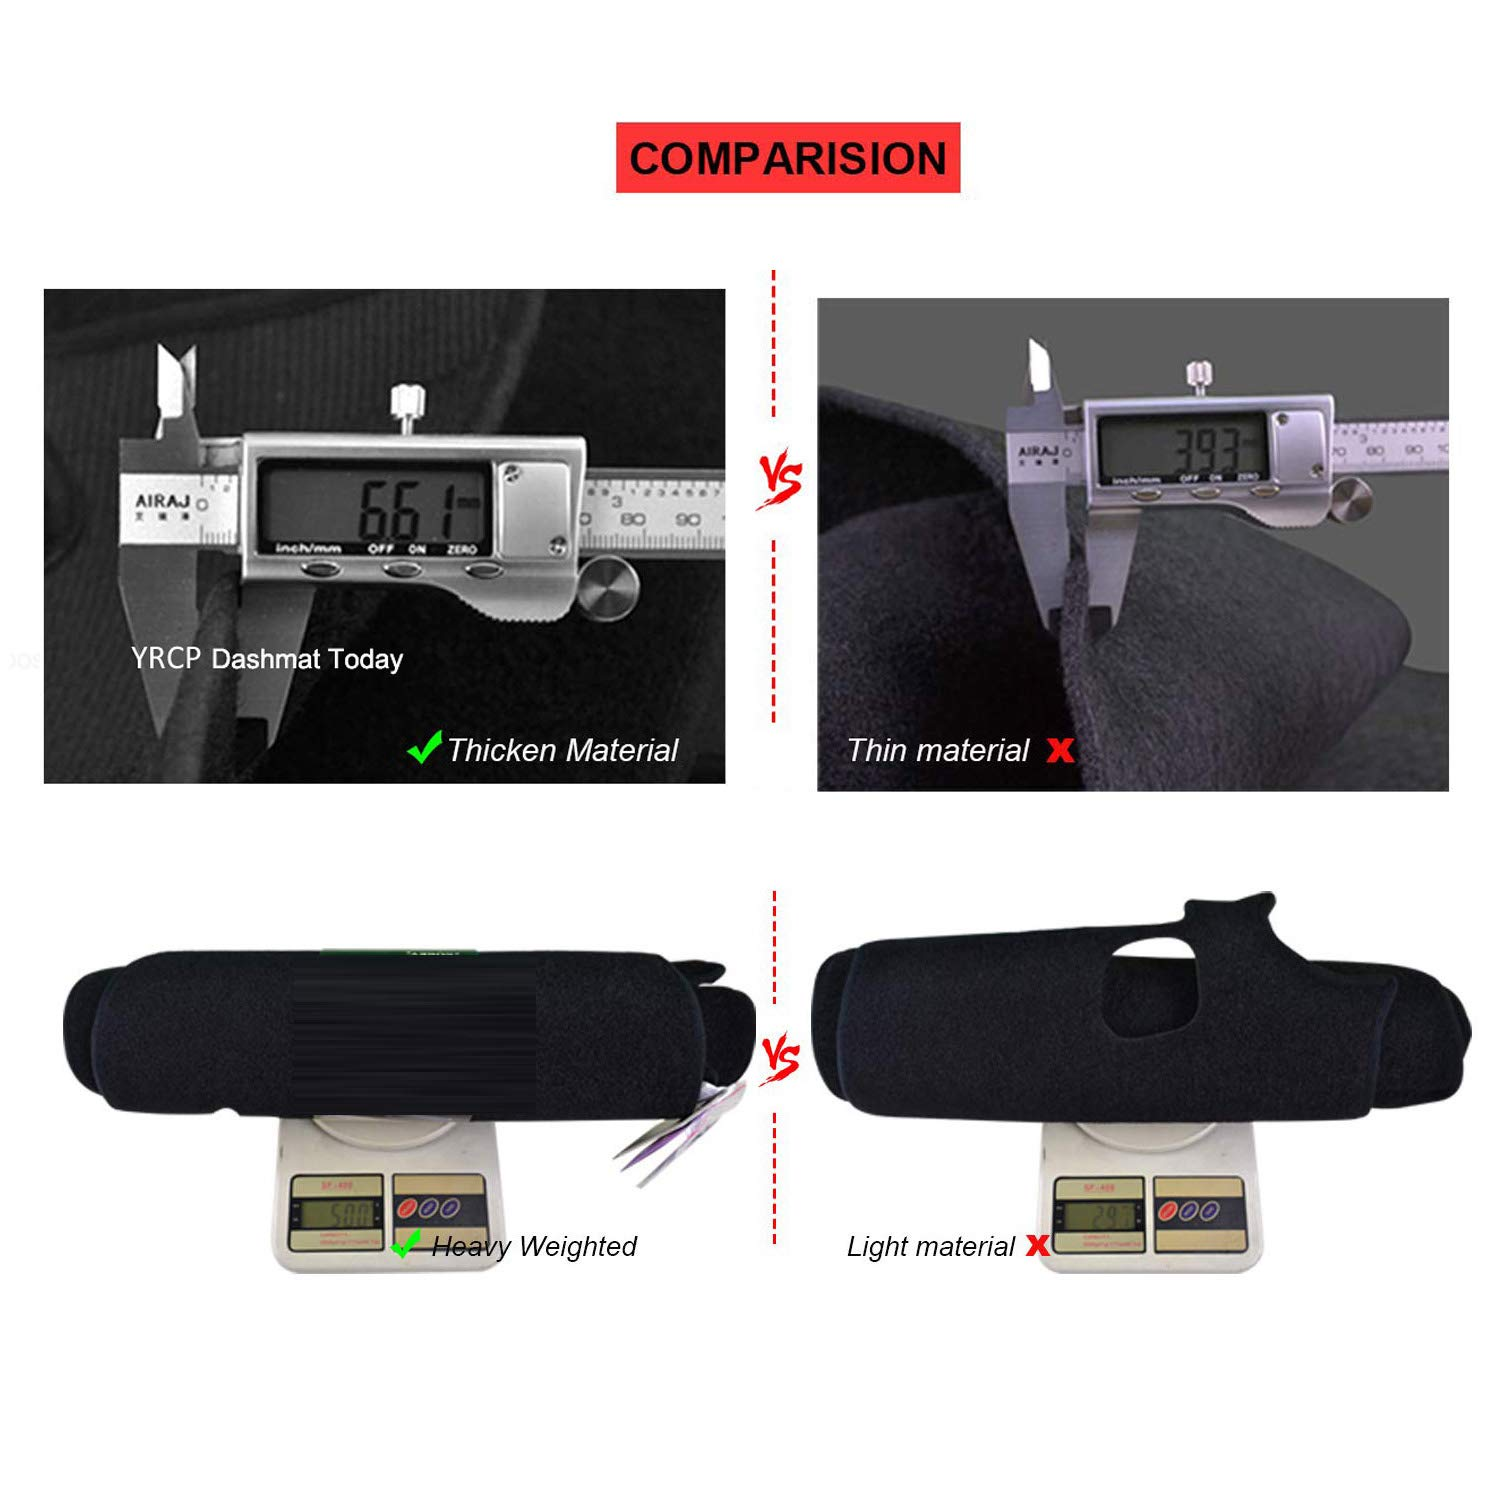 MR024 Fits Chevrolet Tahoe 2007-2013 Models with YRCP Dashboard Cover Carpet Black Left Driving